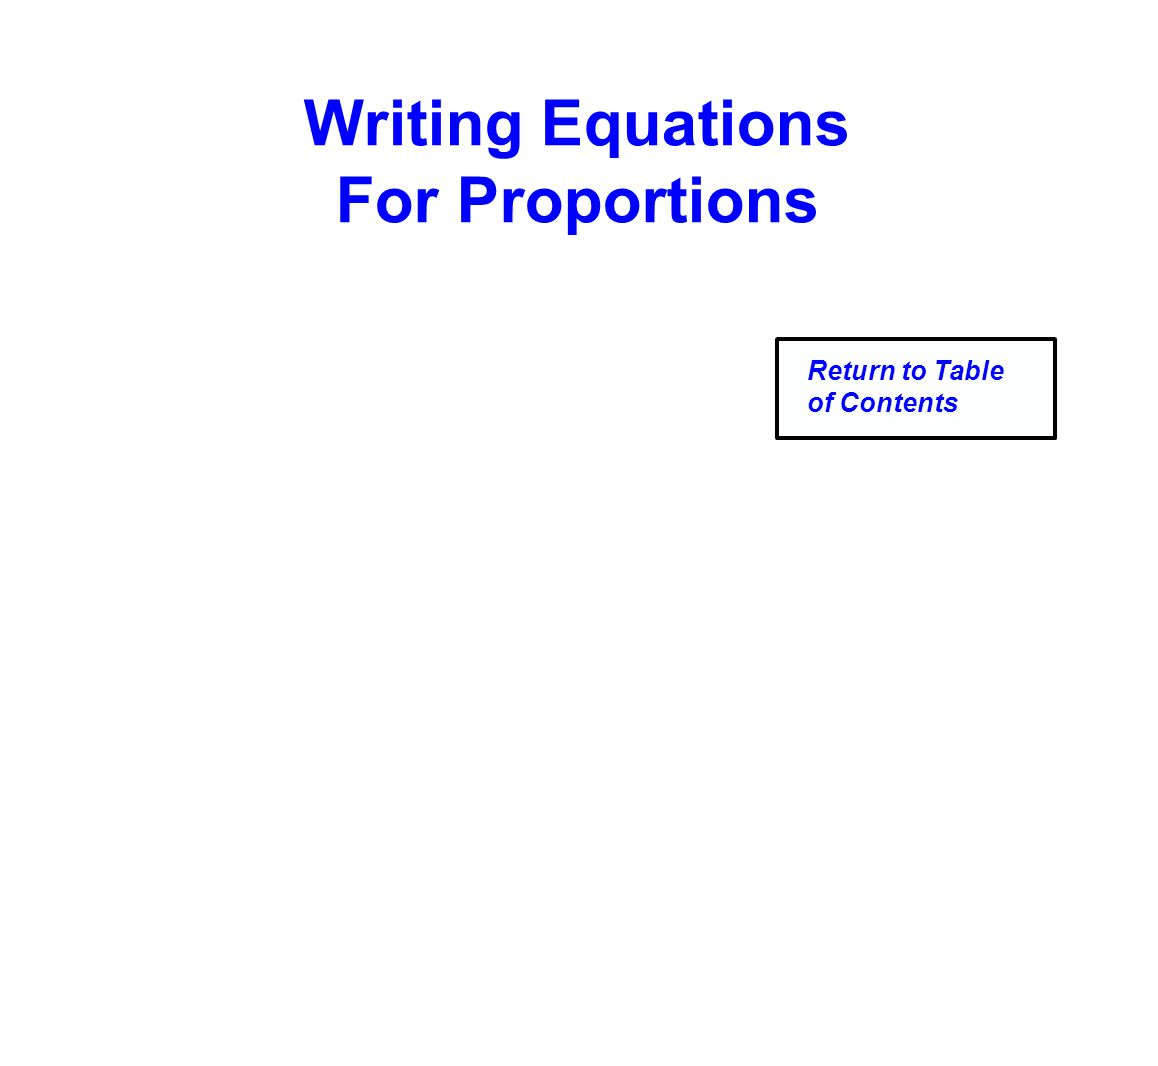 Writing Equations For Proportions